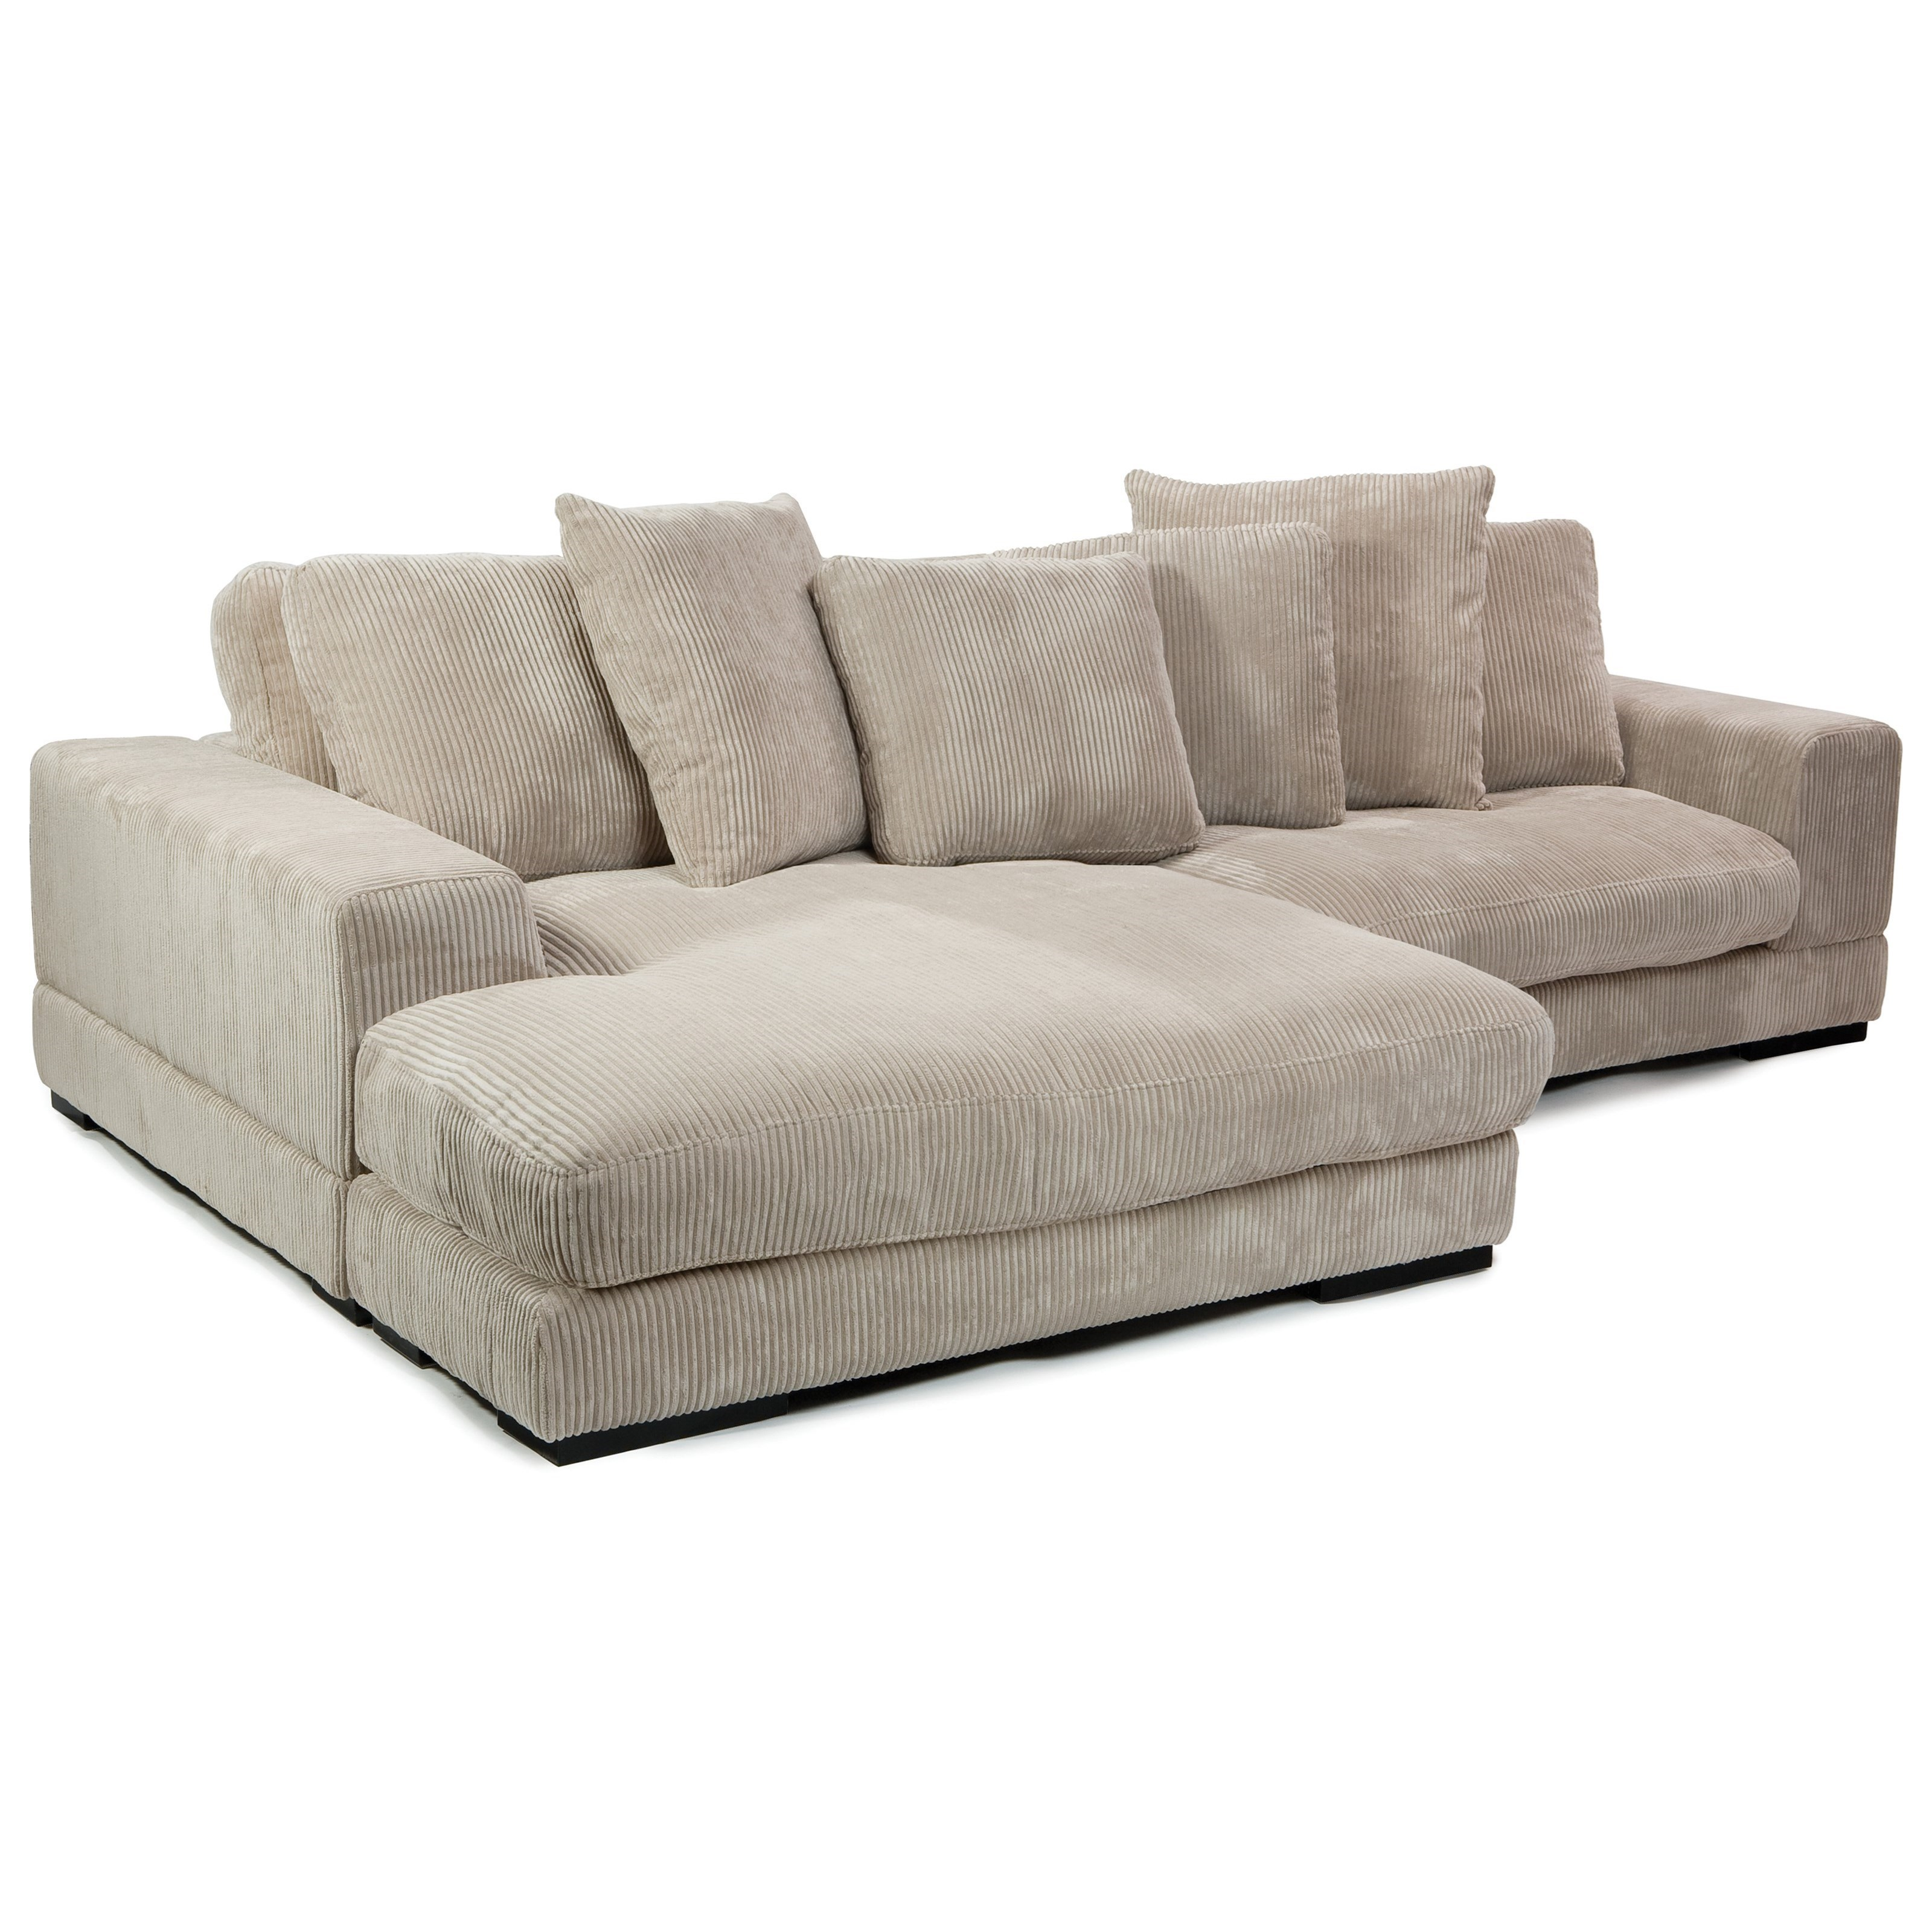 Plunge Sectional by Moe's Home Collection at Stoney Creek Furniture